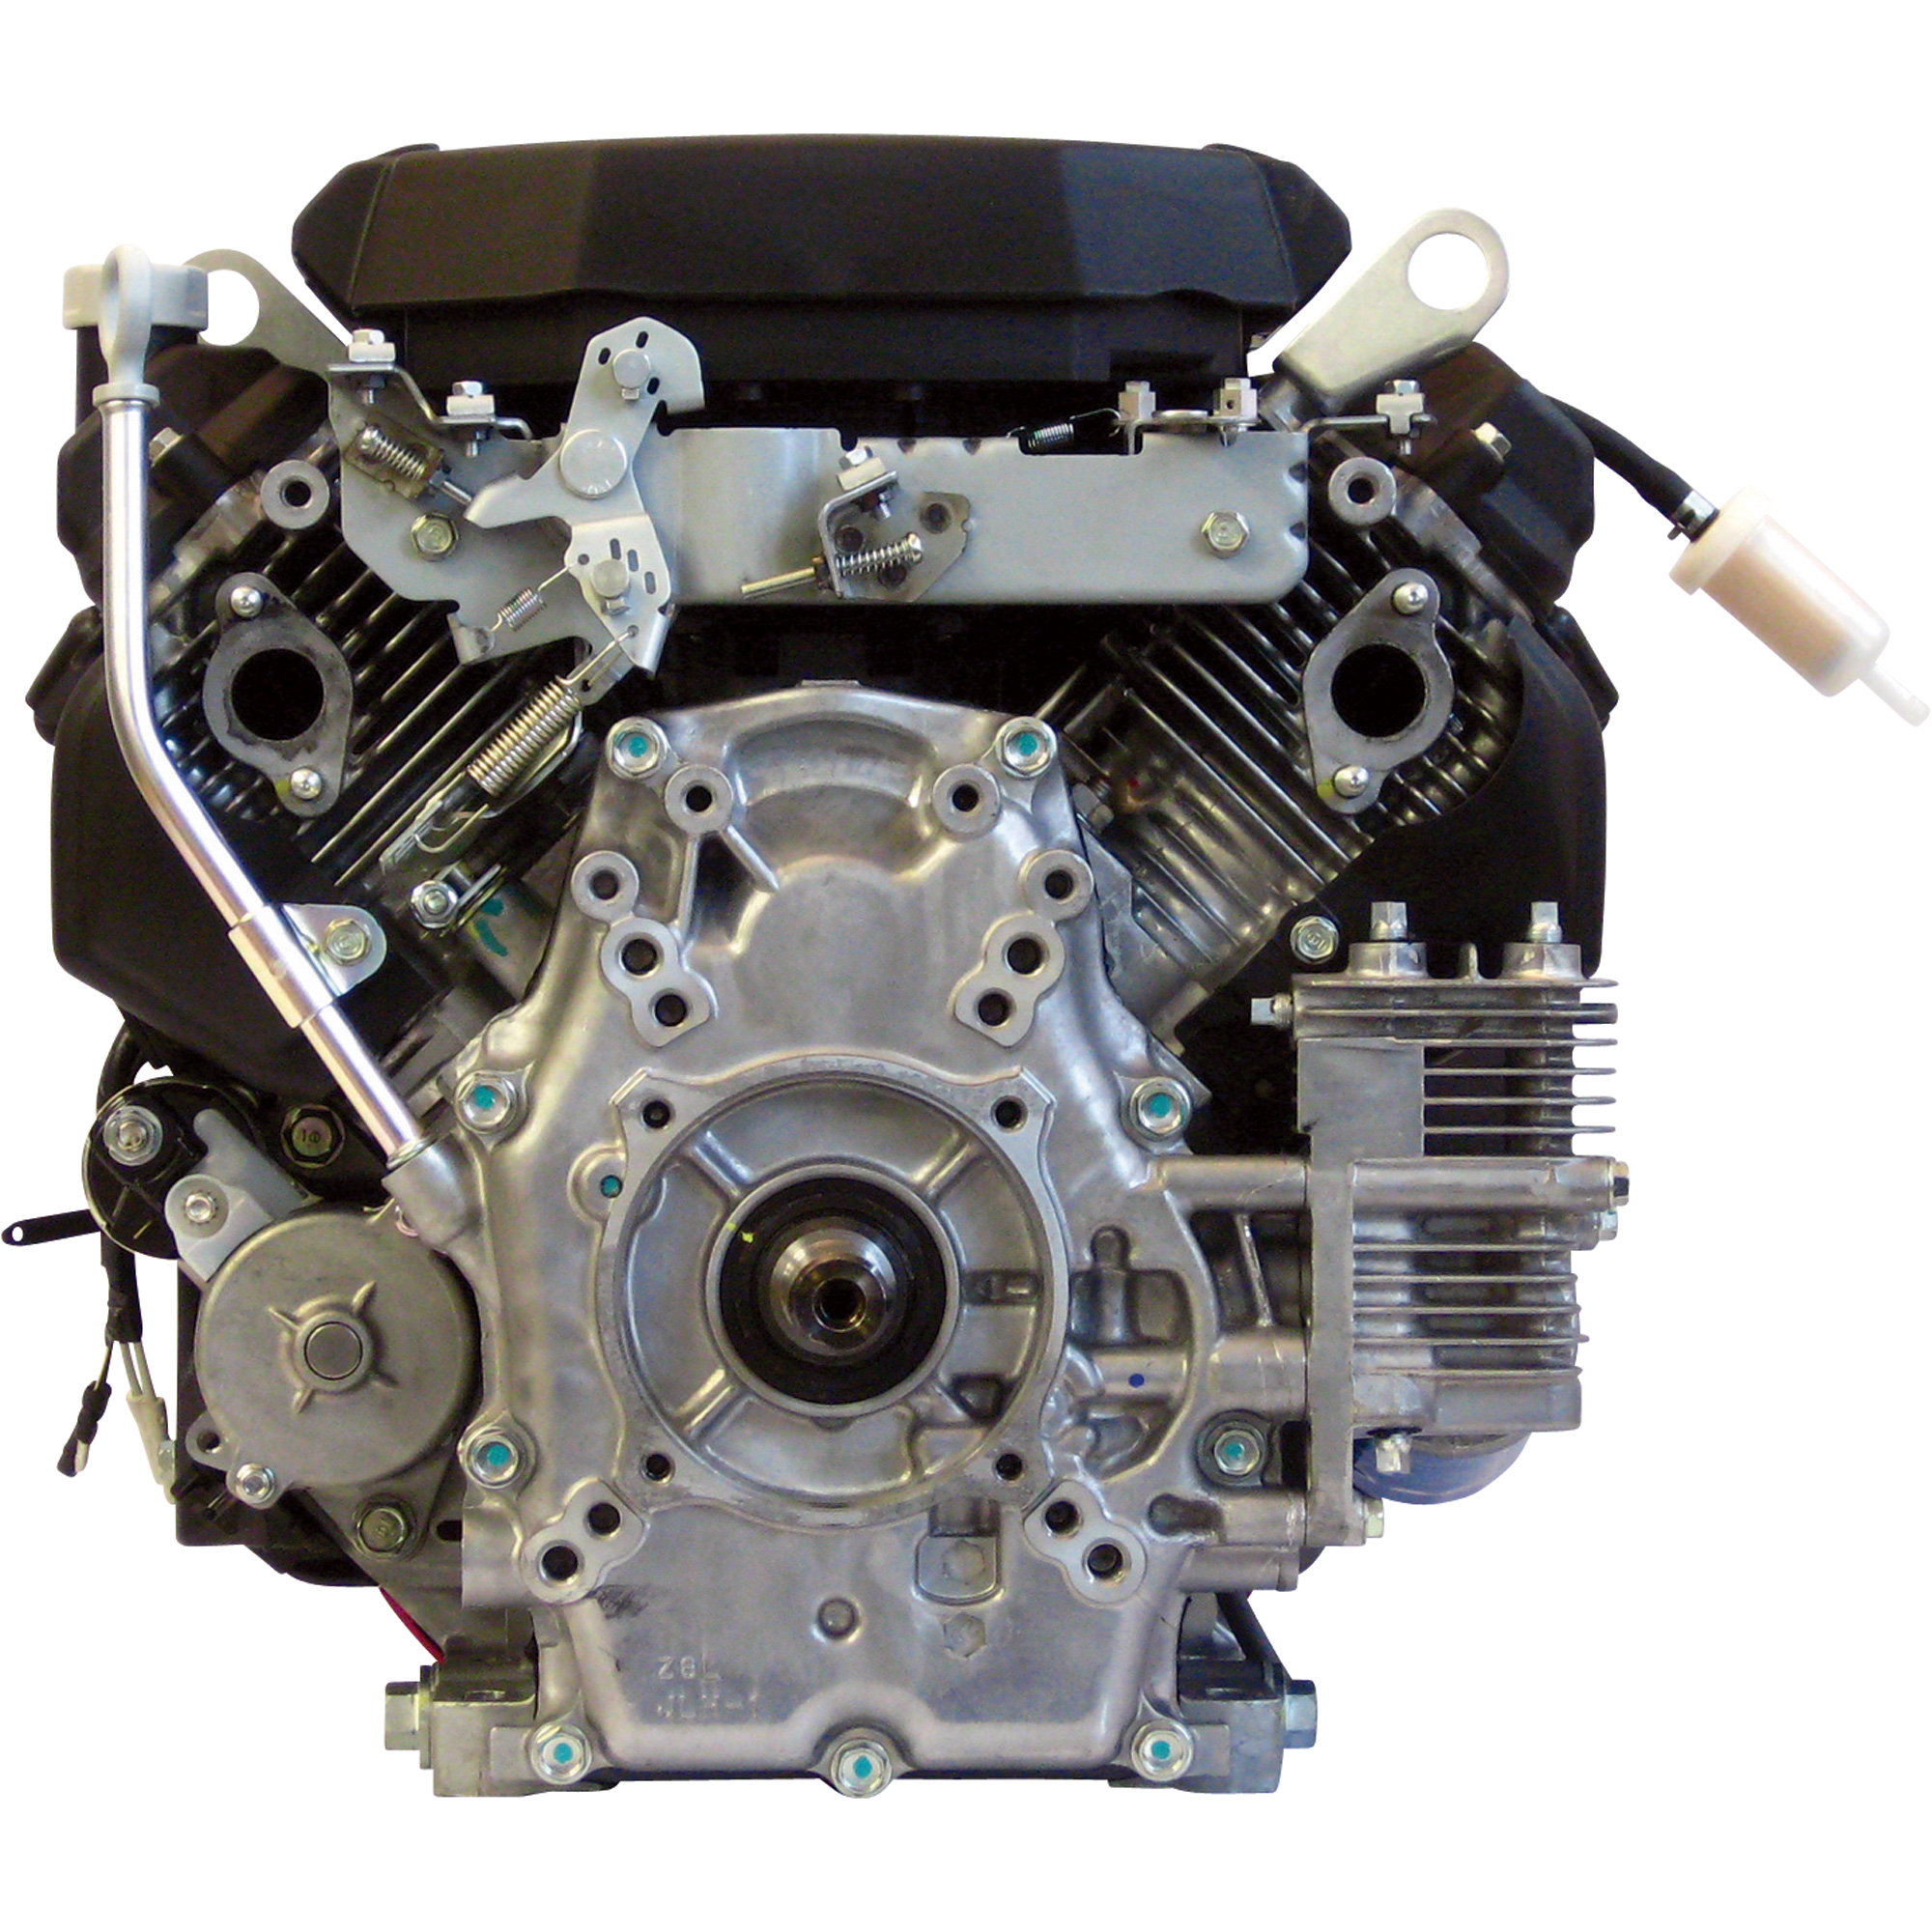 Honda V-Twin Horizontal OHV Engine with Electric Start – 688cc, GX Series,  1in  x 2 29/32in  Shaft, Model# GX630RHQAF